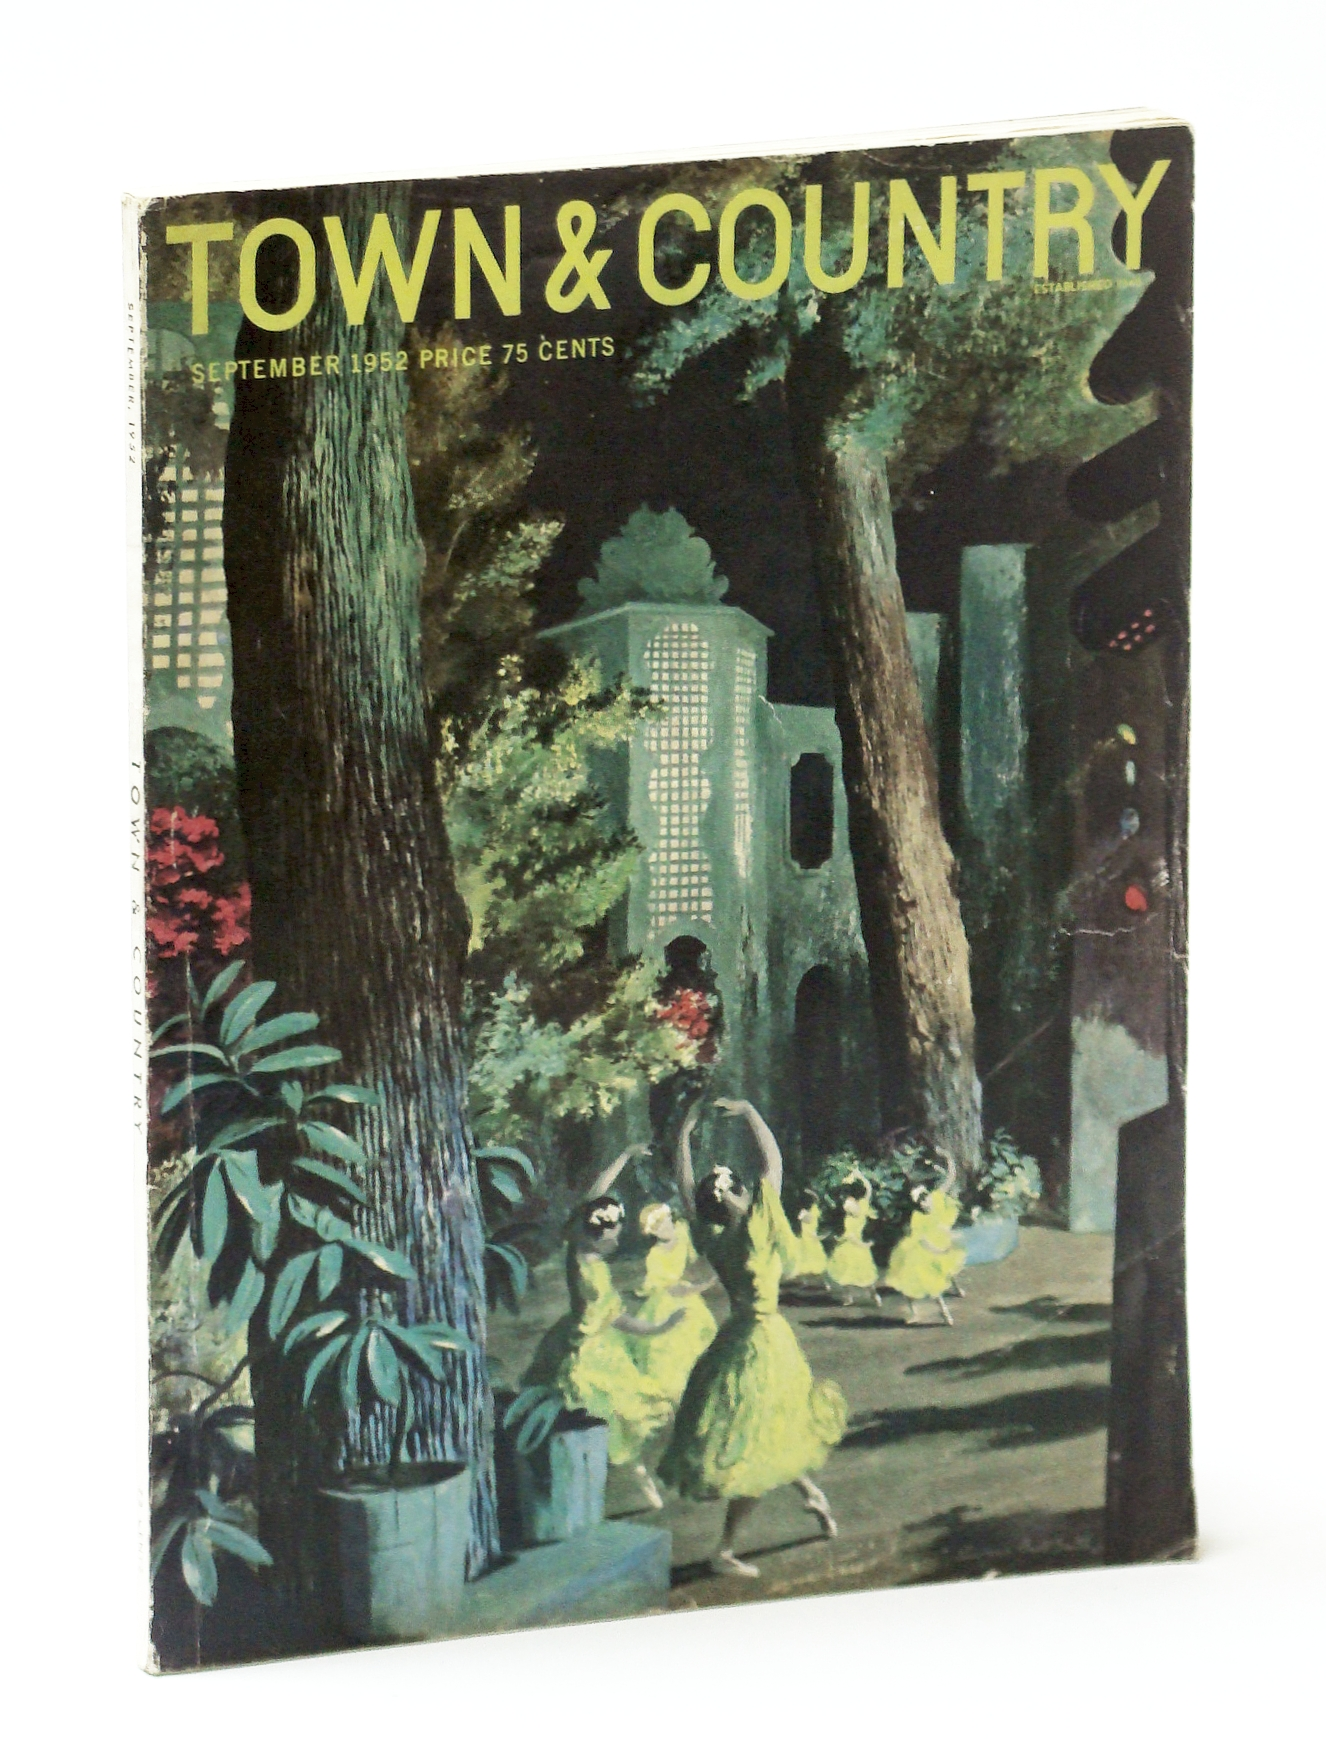 Image for Town & Country Magazine, September (Sept.) 1952, Vol. 106, No. 4360 - Special St. Louis Issue